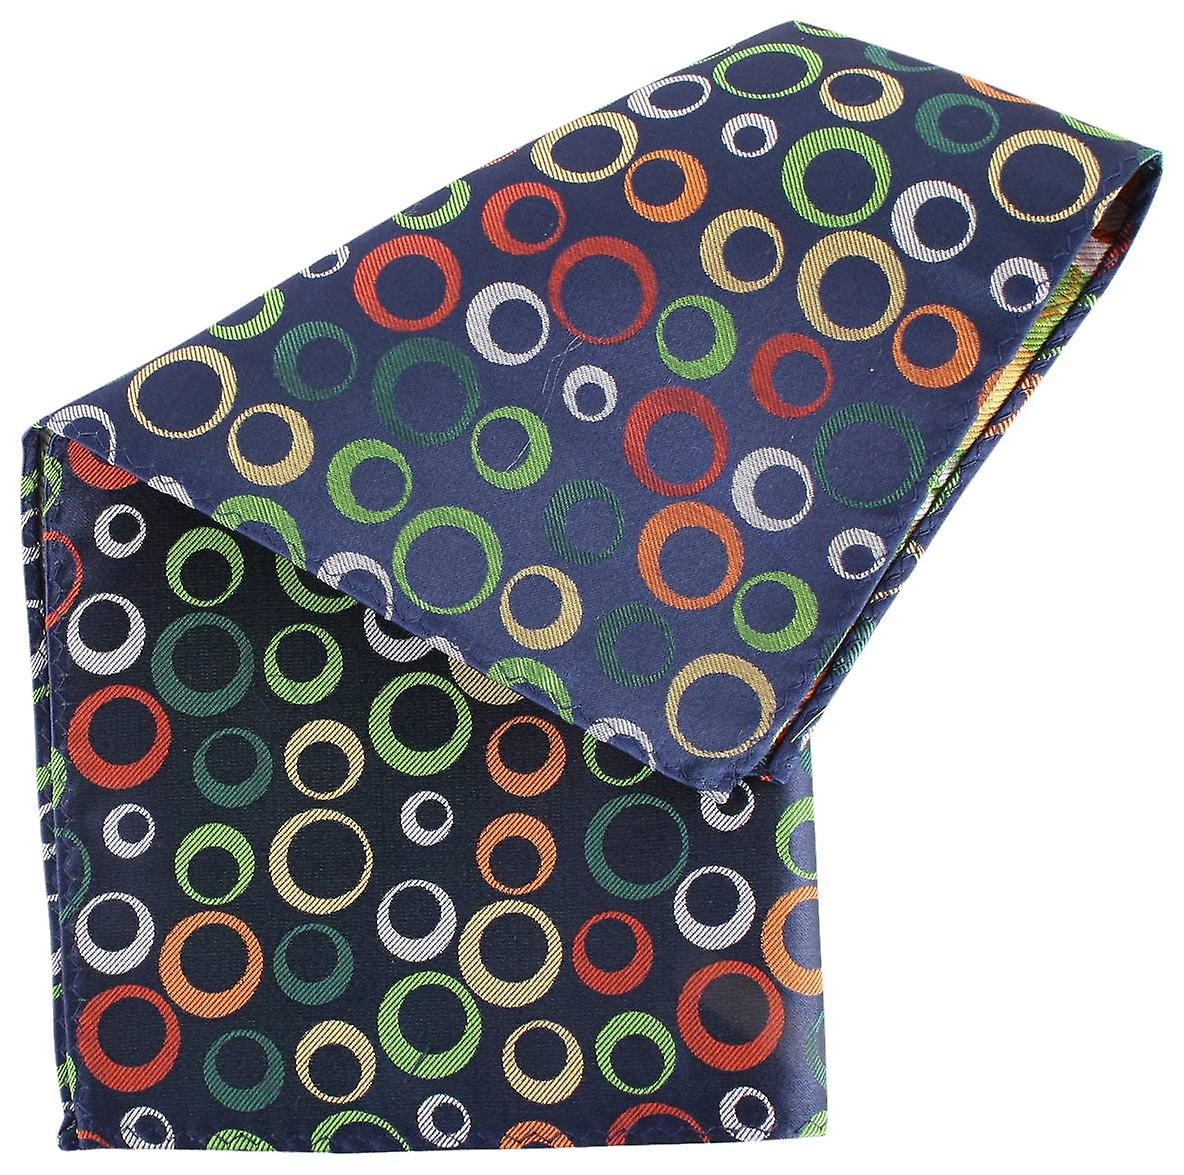 Knightsbridge Neckwear Circles and Stripe Silk Pocket Square - Black